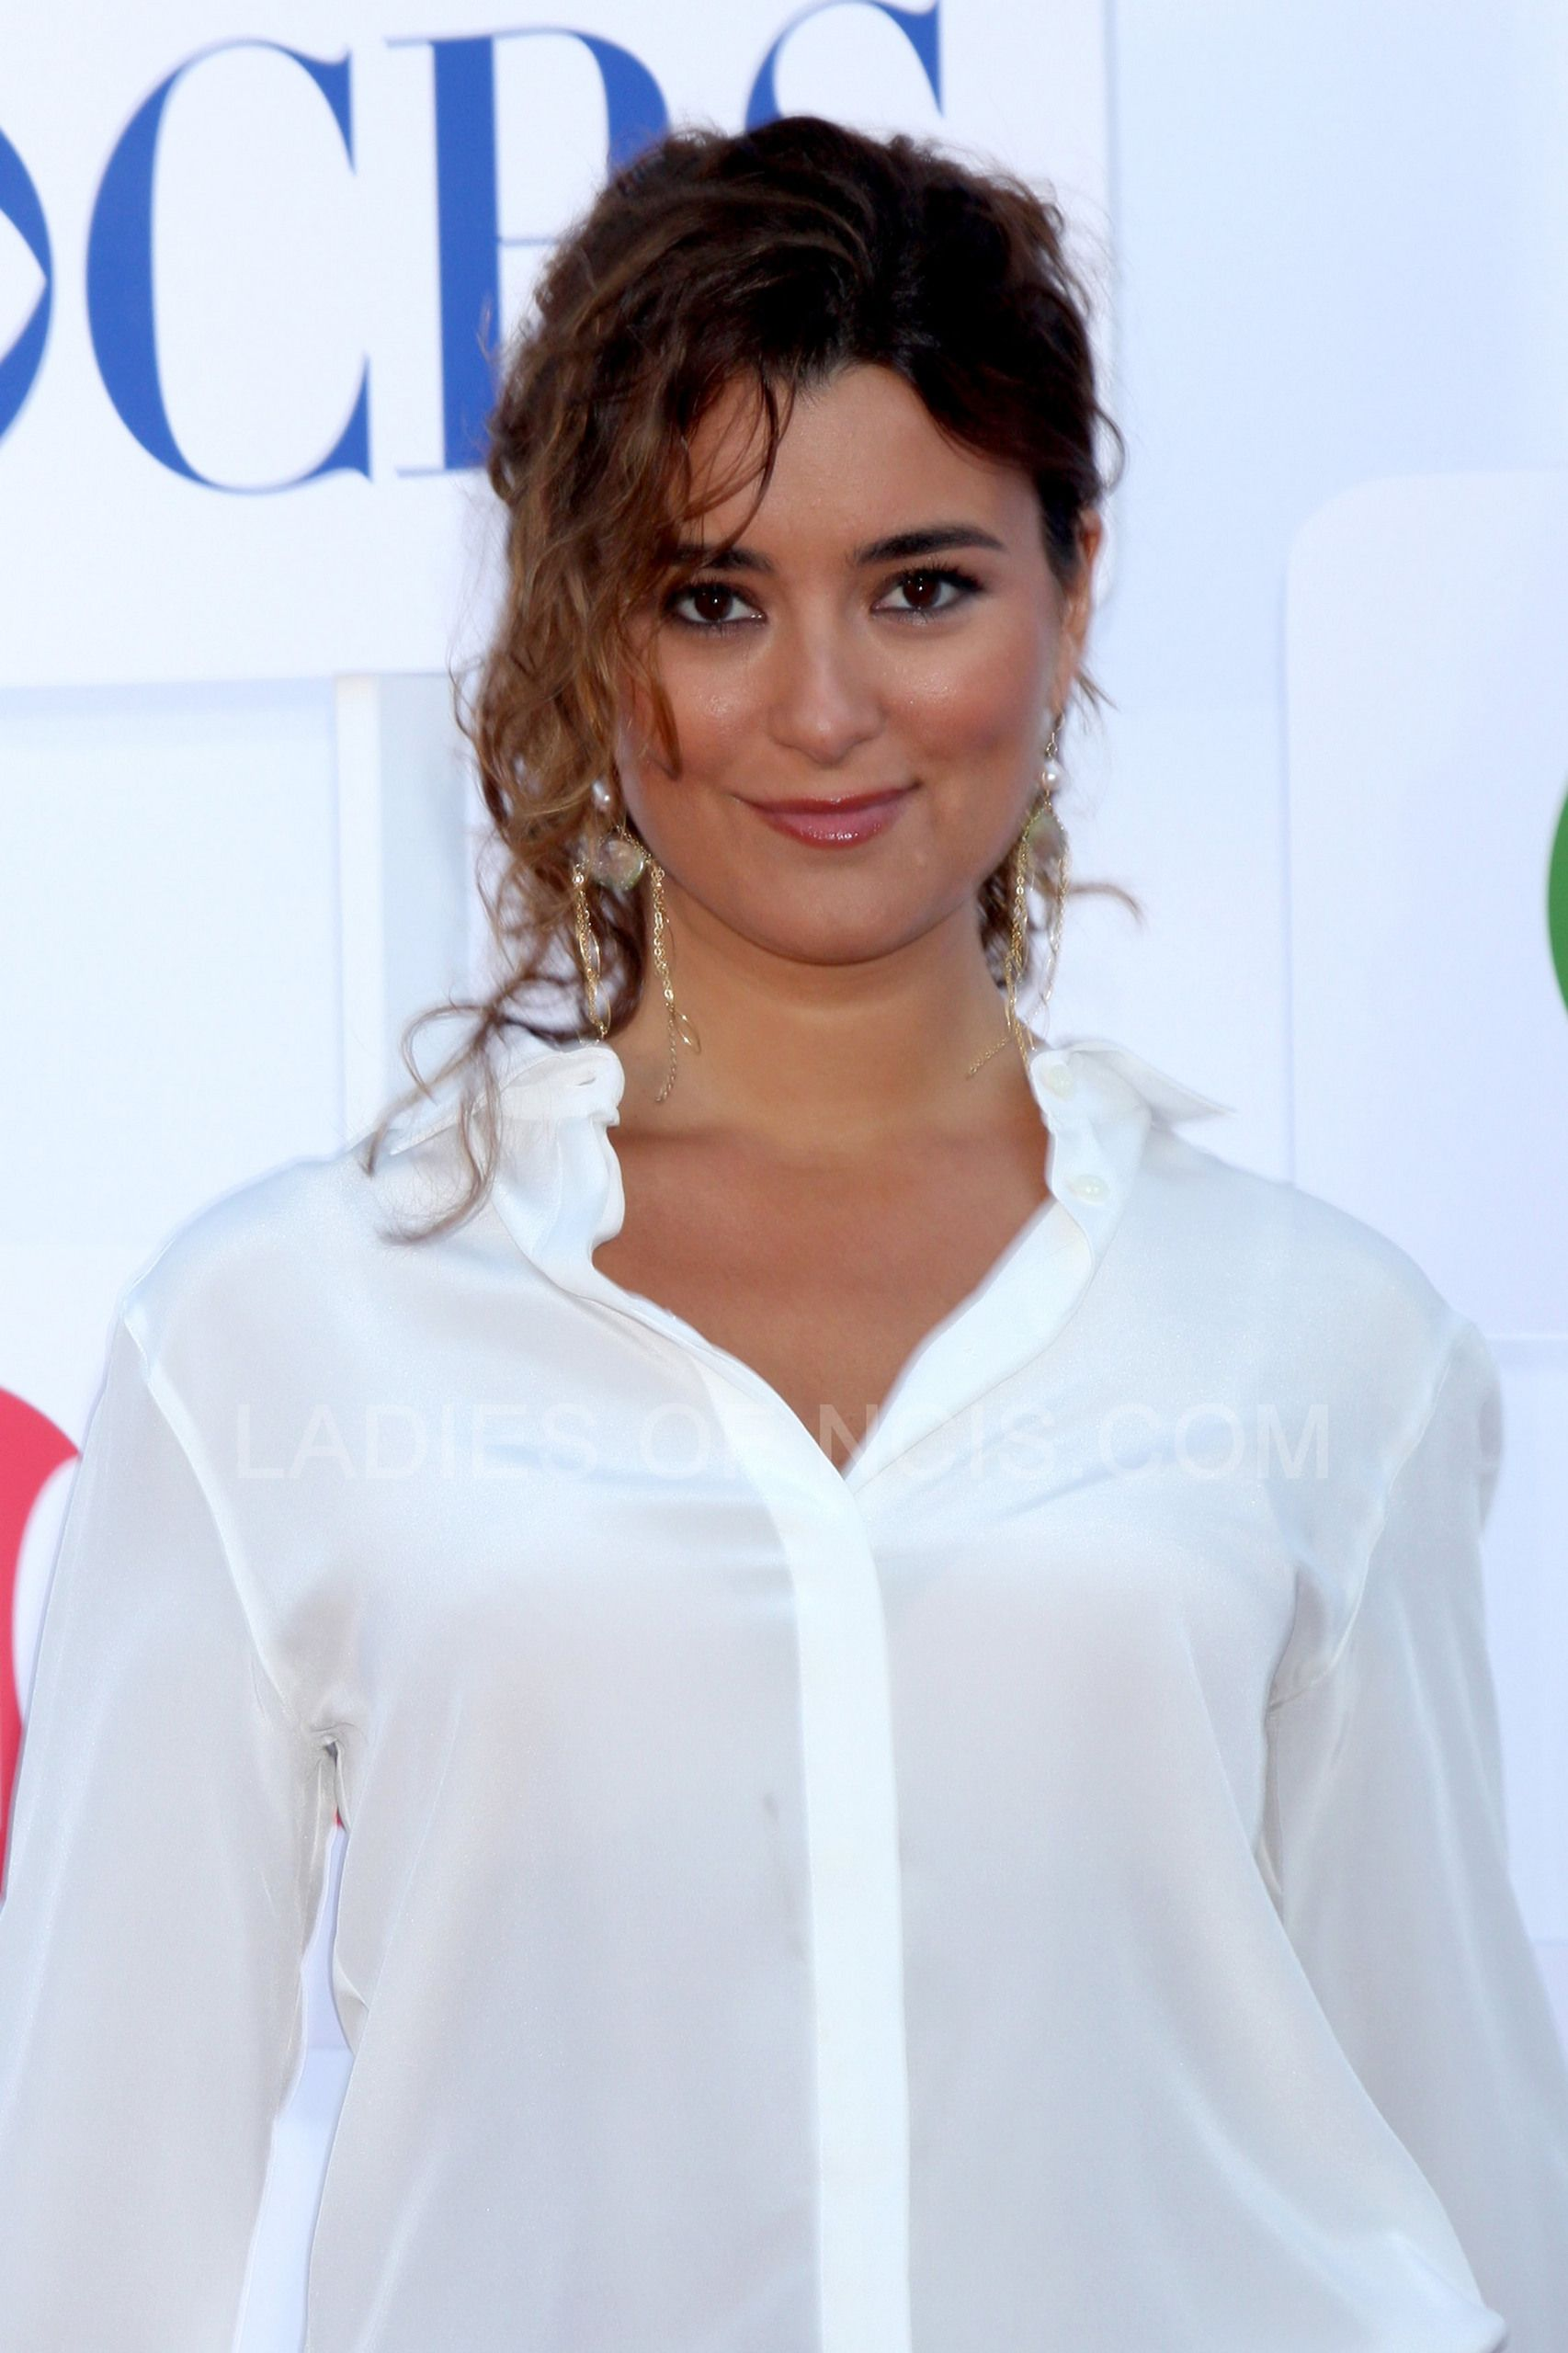 cote de pablo net worth